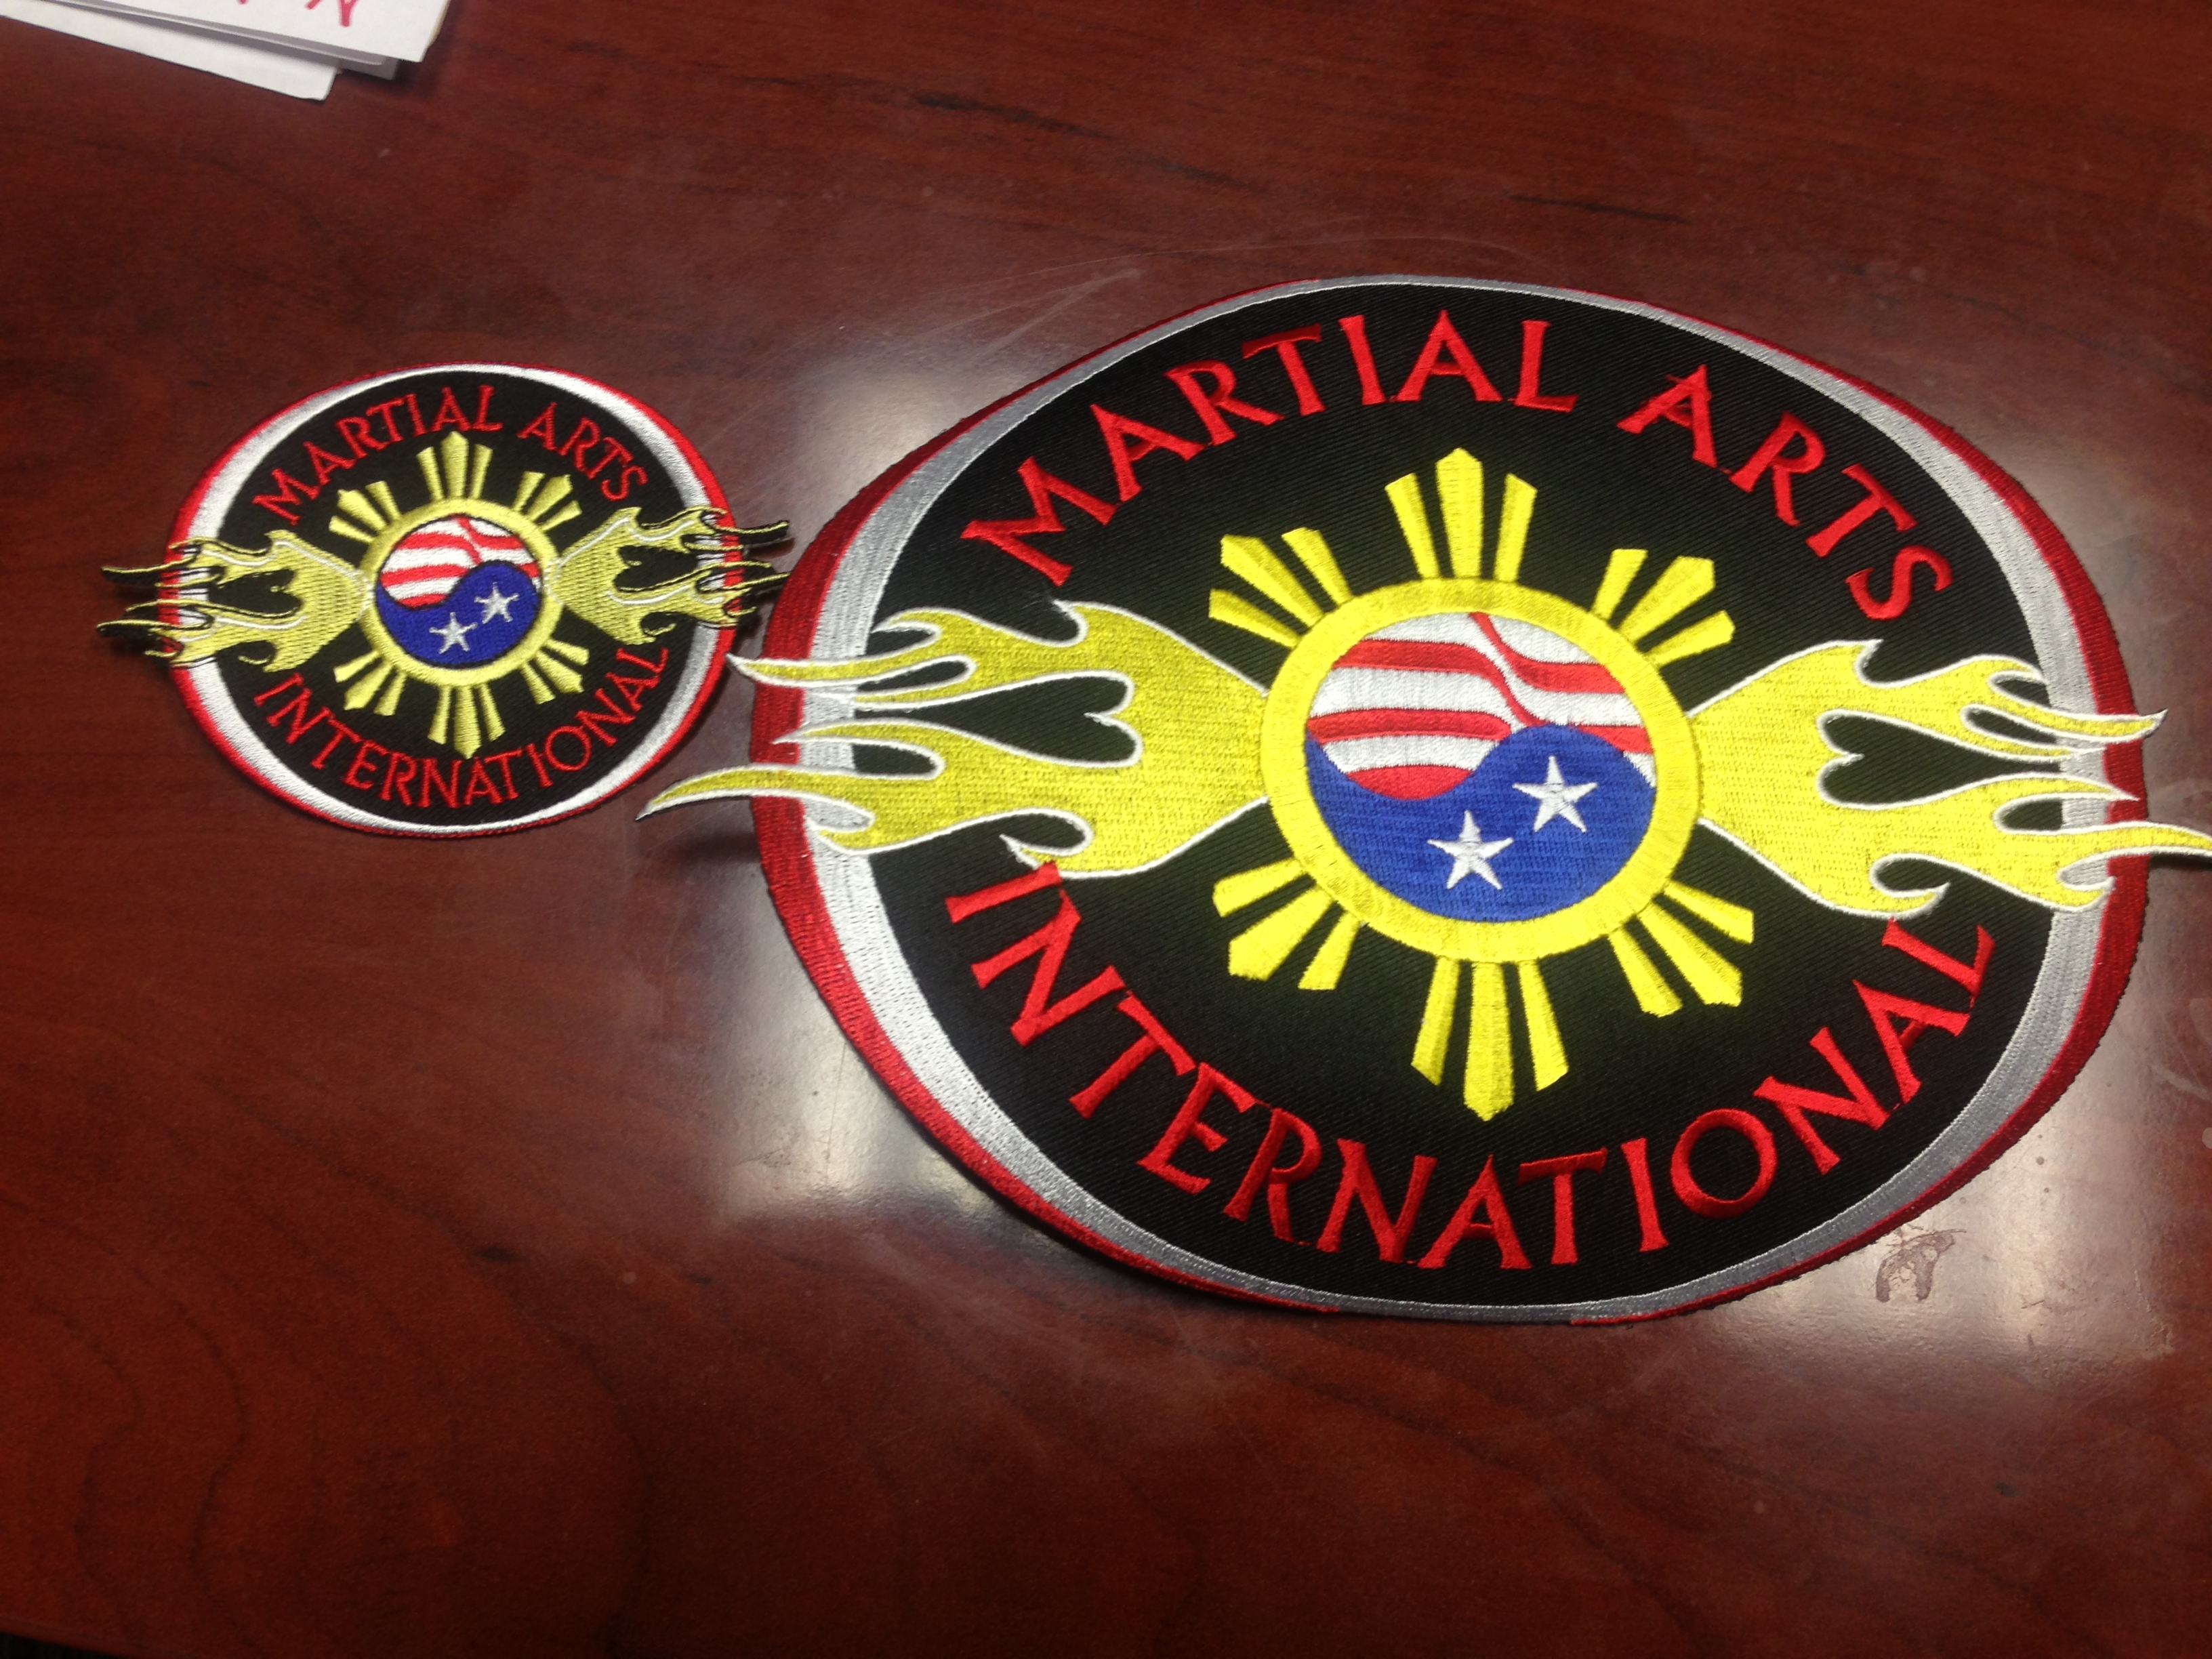 Martial Arts International Patch